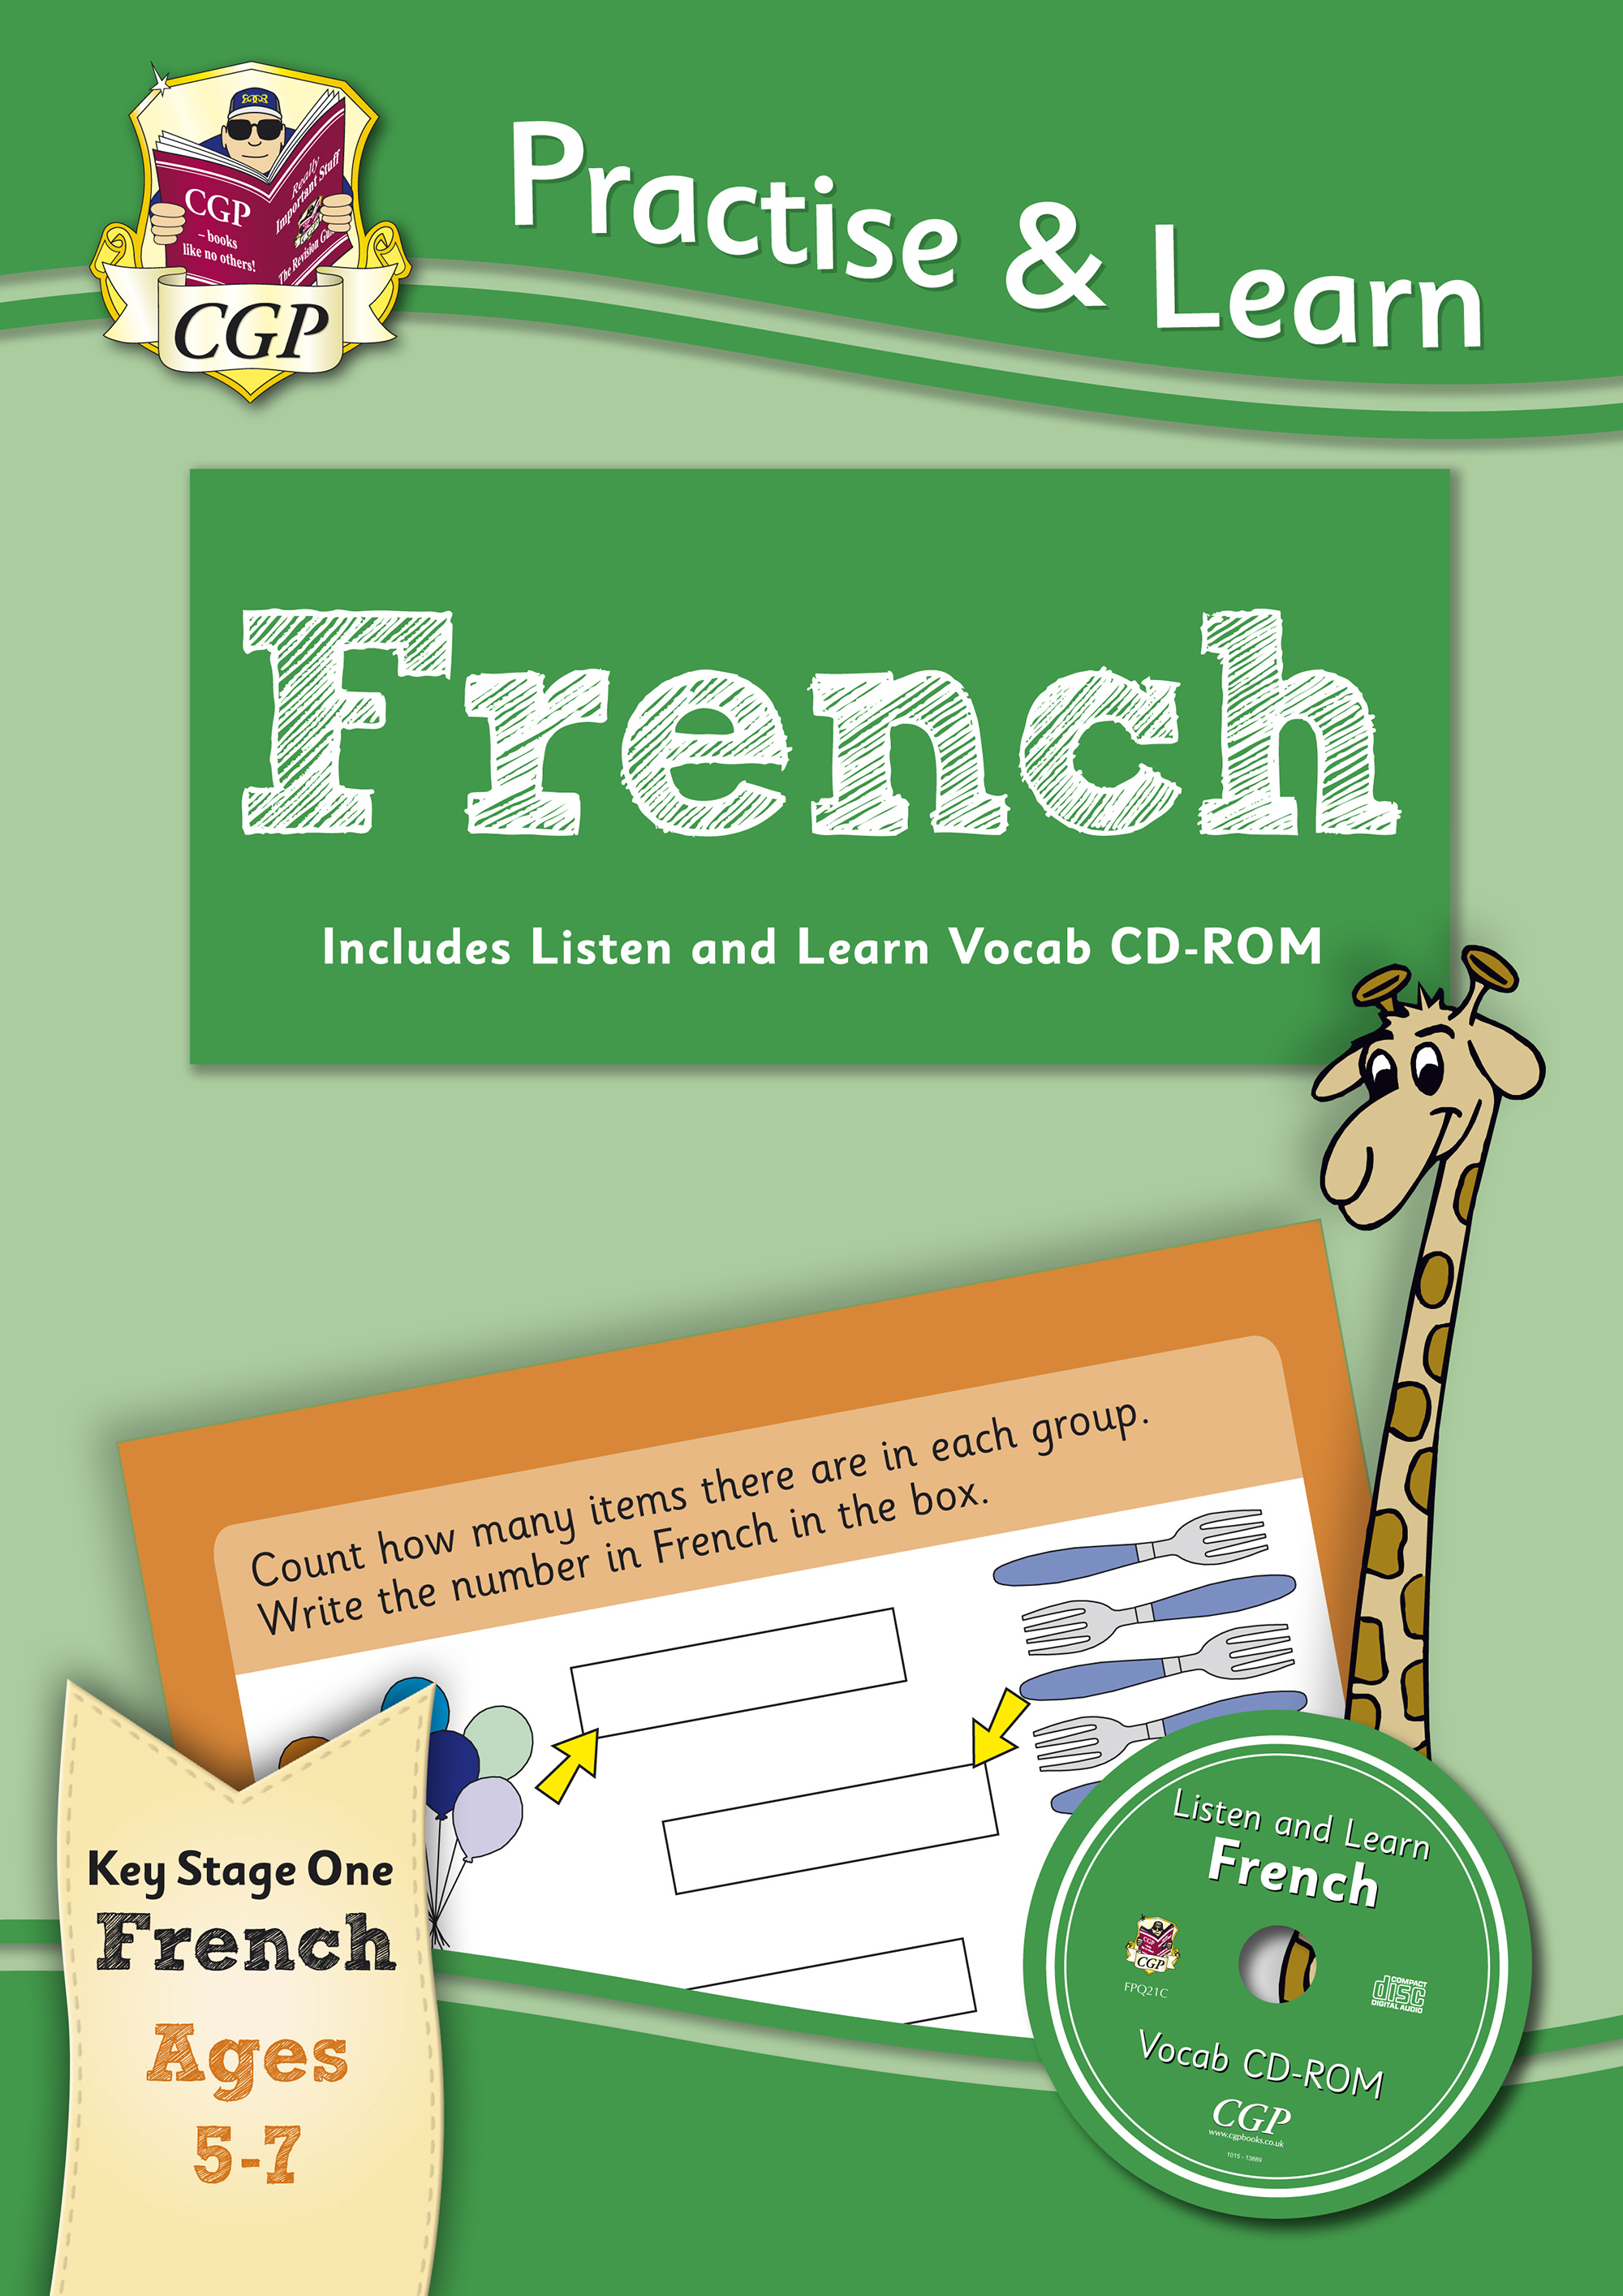 FPQ12 - Practise & Learn: French for Ages 5-7 - with vocab CD-ROM